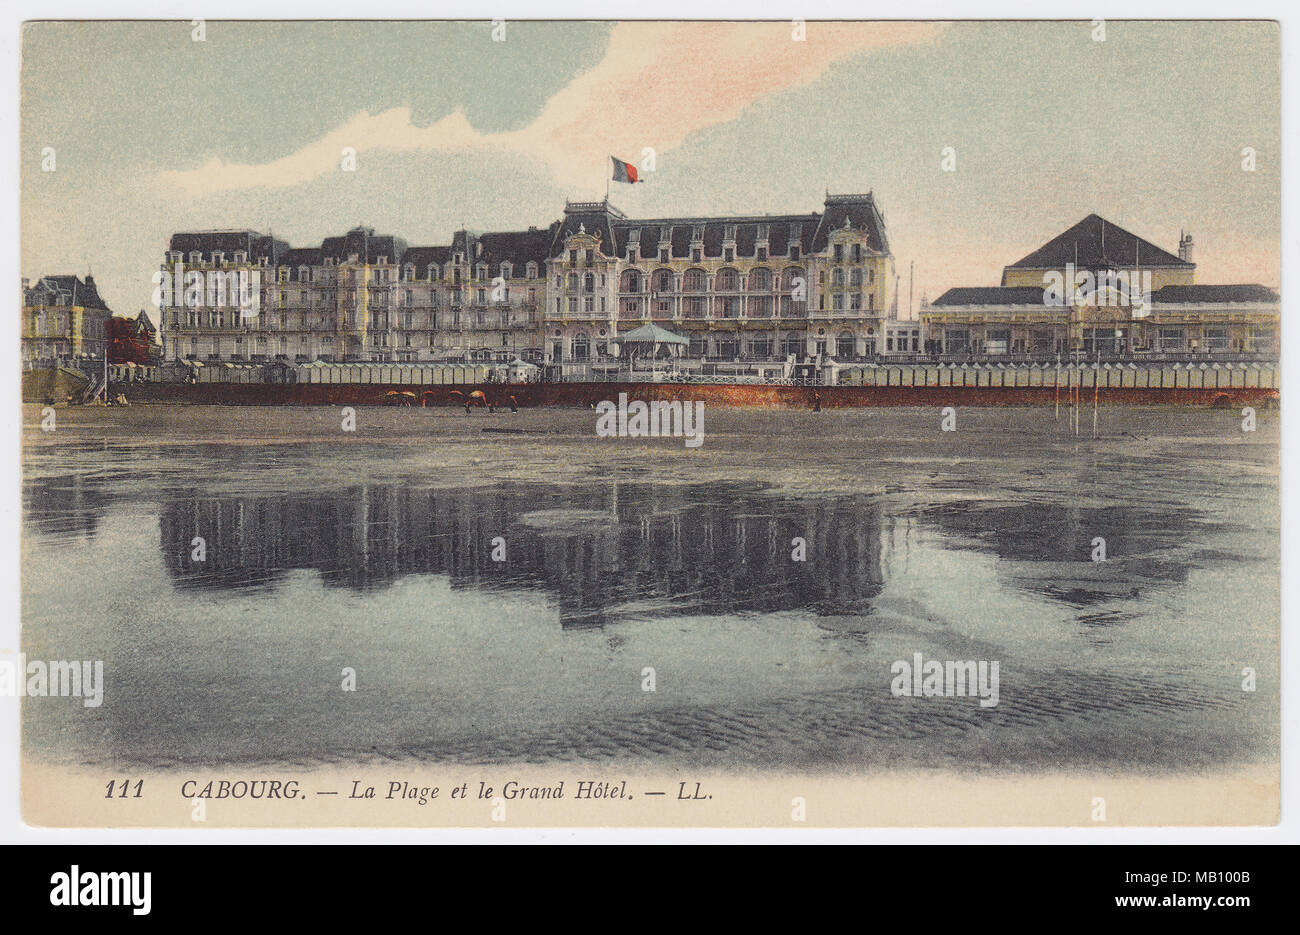 Grand Hotel, Cabourg, France - Stock Image